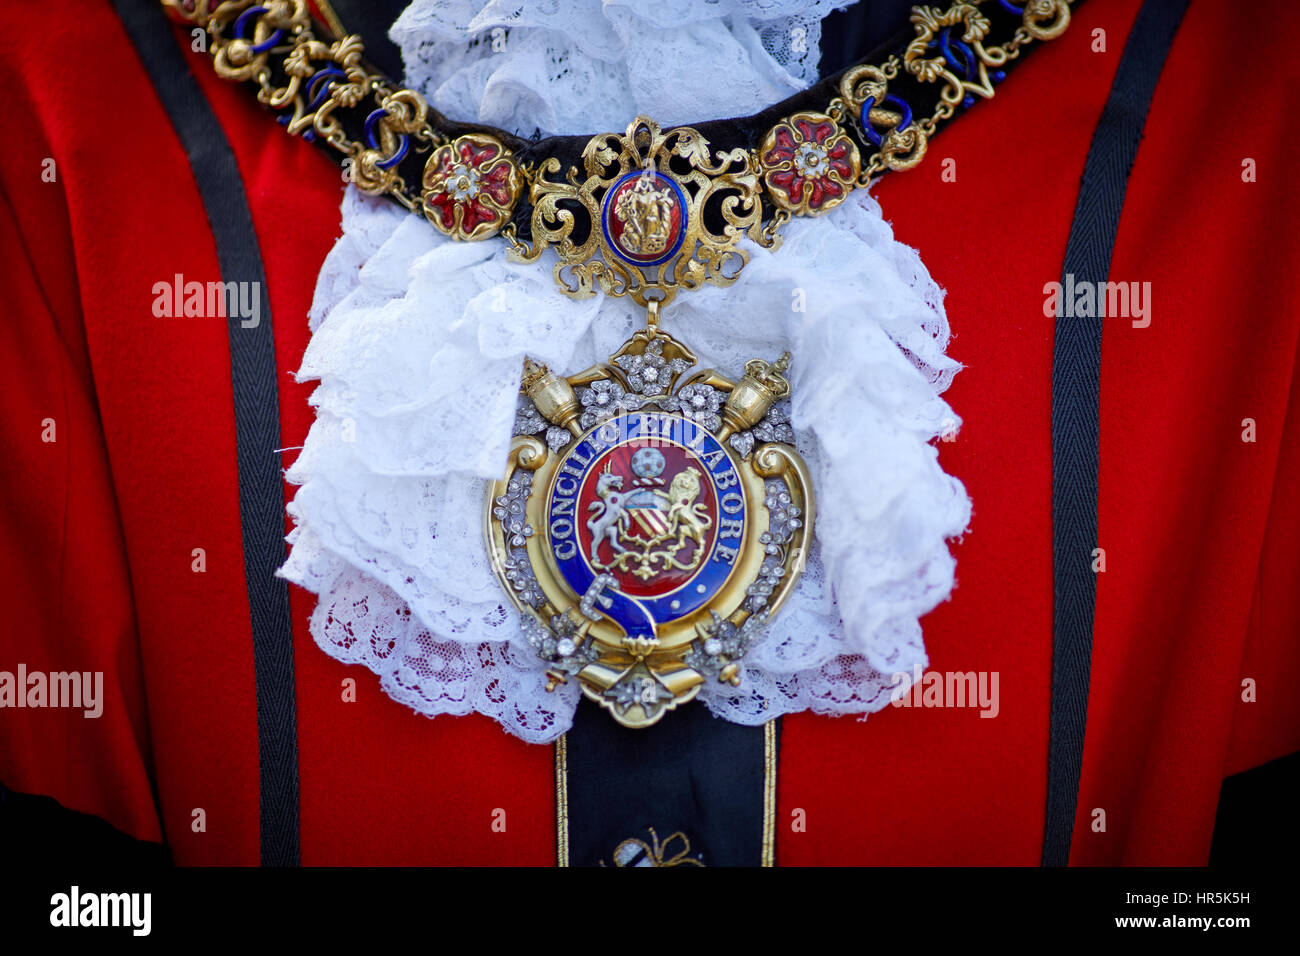 Close up of the Lord Mayor of Manchester's livery collar, chain of office collar of gold heavy chain worn as - Stock Image